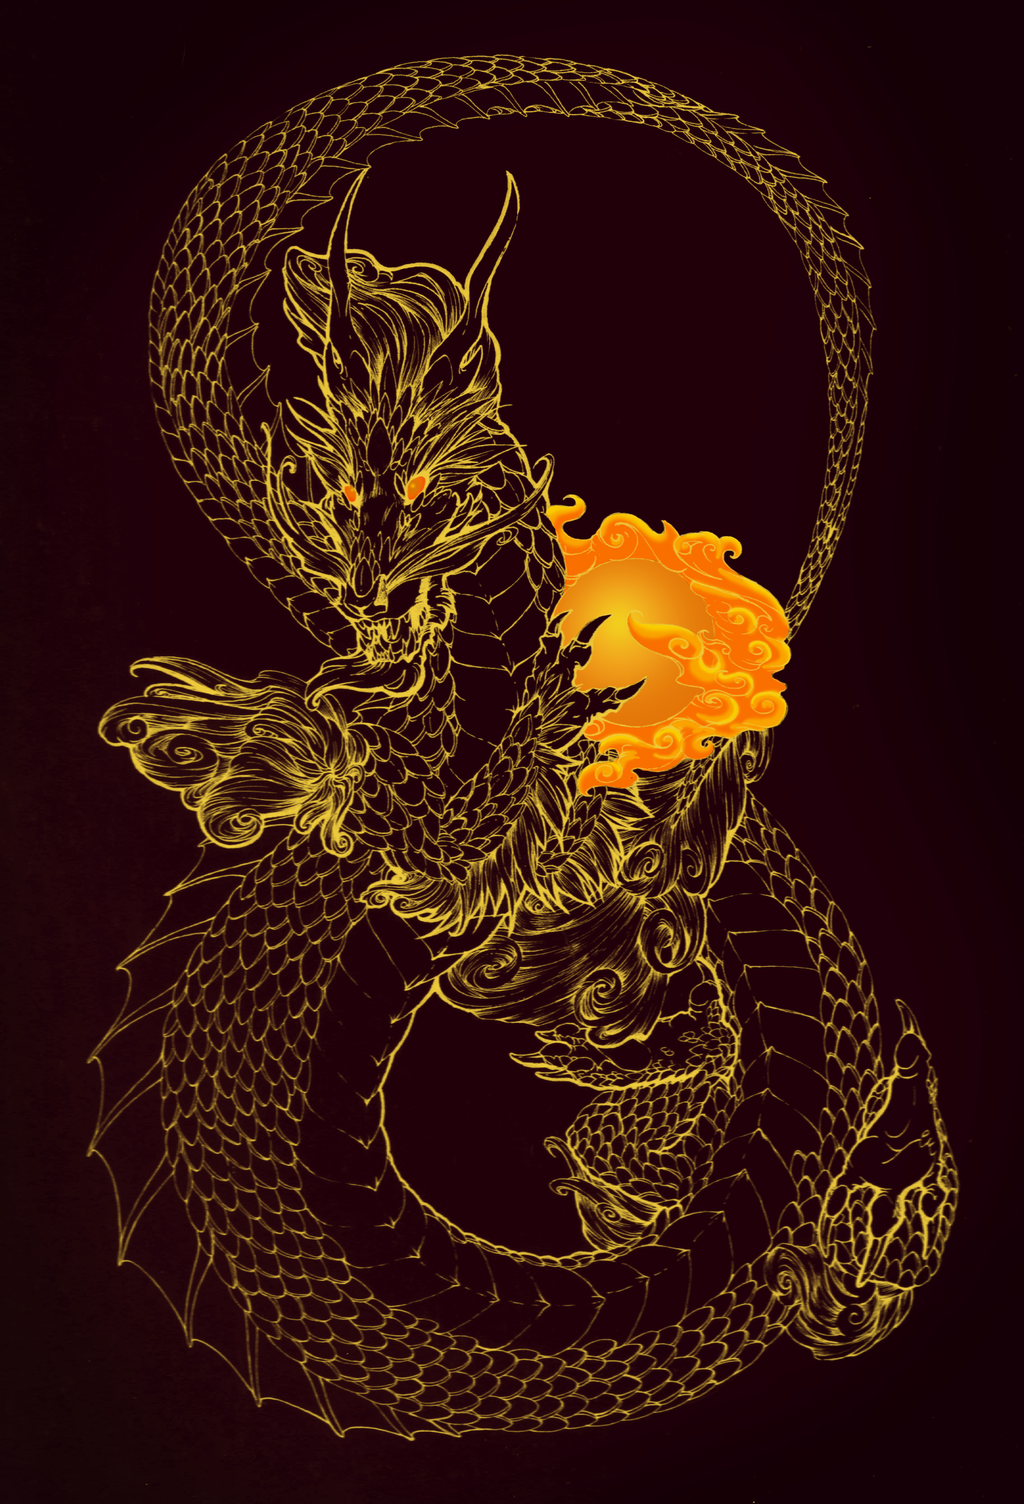 Year of the Dragon 2012 by ElysianImagery